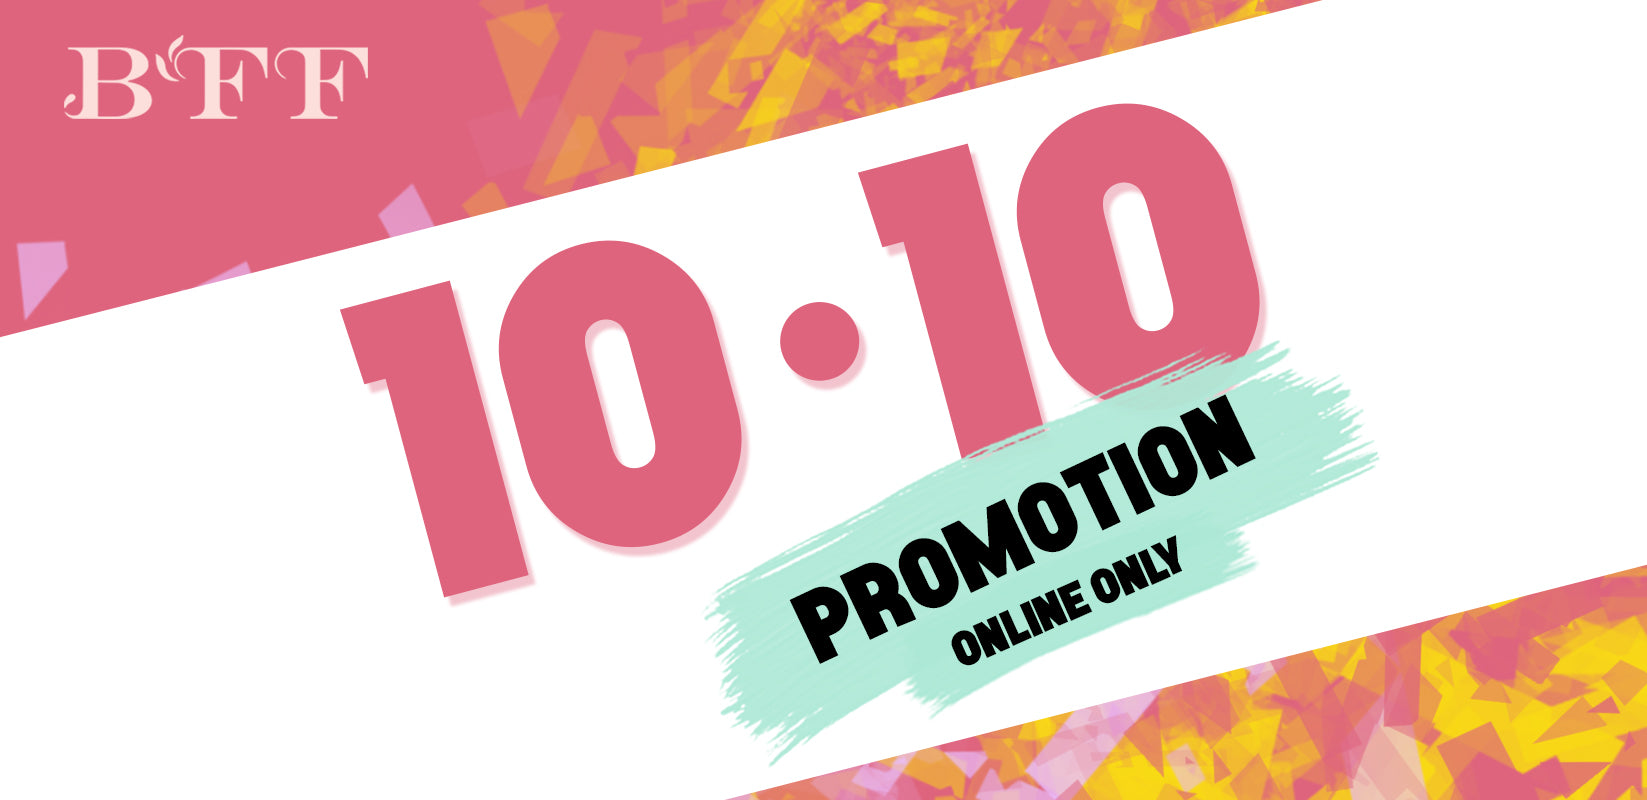 10.10 SPECIAL PROMOTION